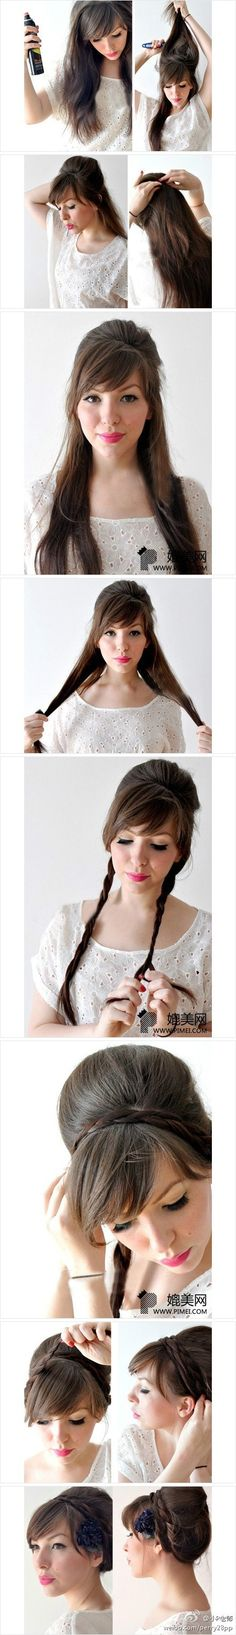 How To Do An Easy Pretty Up Do Hairstyle With Your Hair - Beauty Tutorials